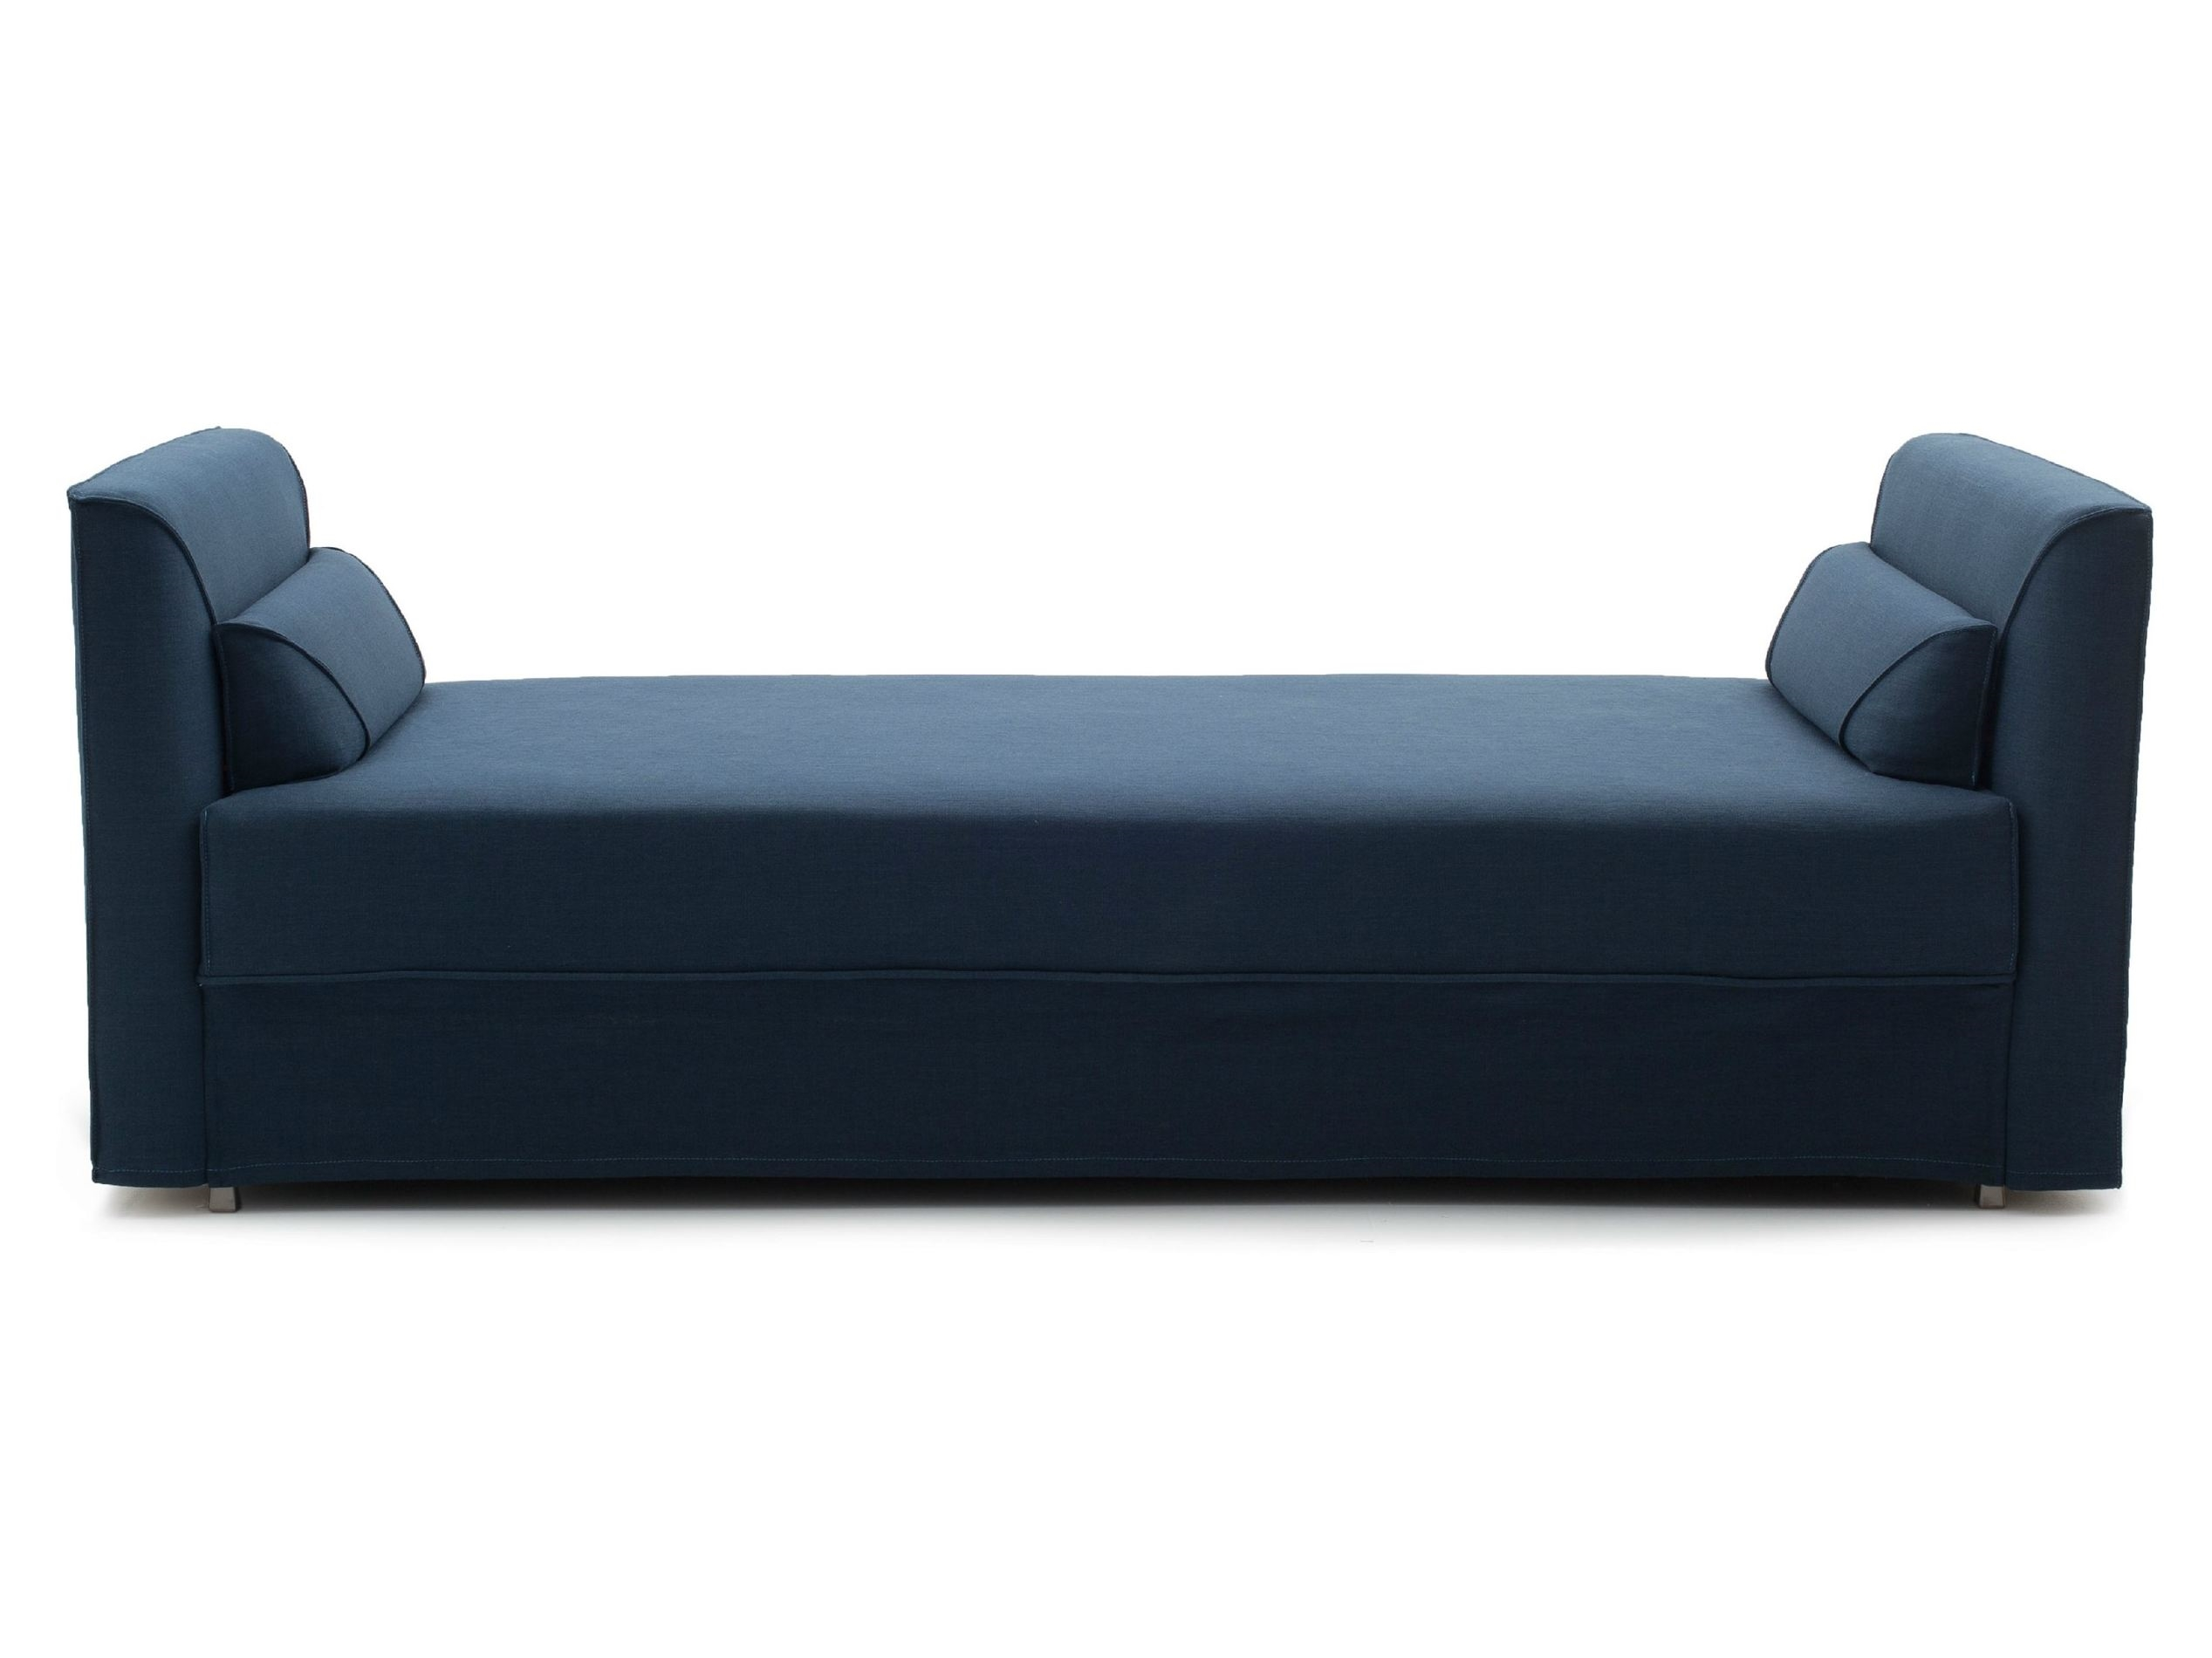 Sofa / Day Bed NIGHT&DAY BED By Bodema